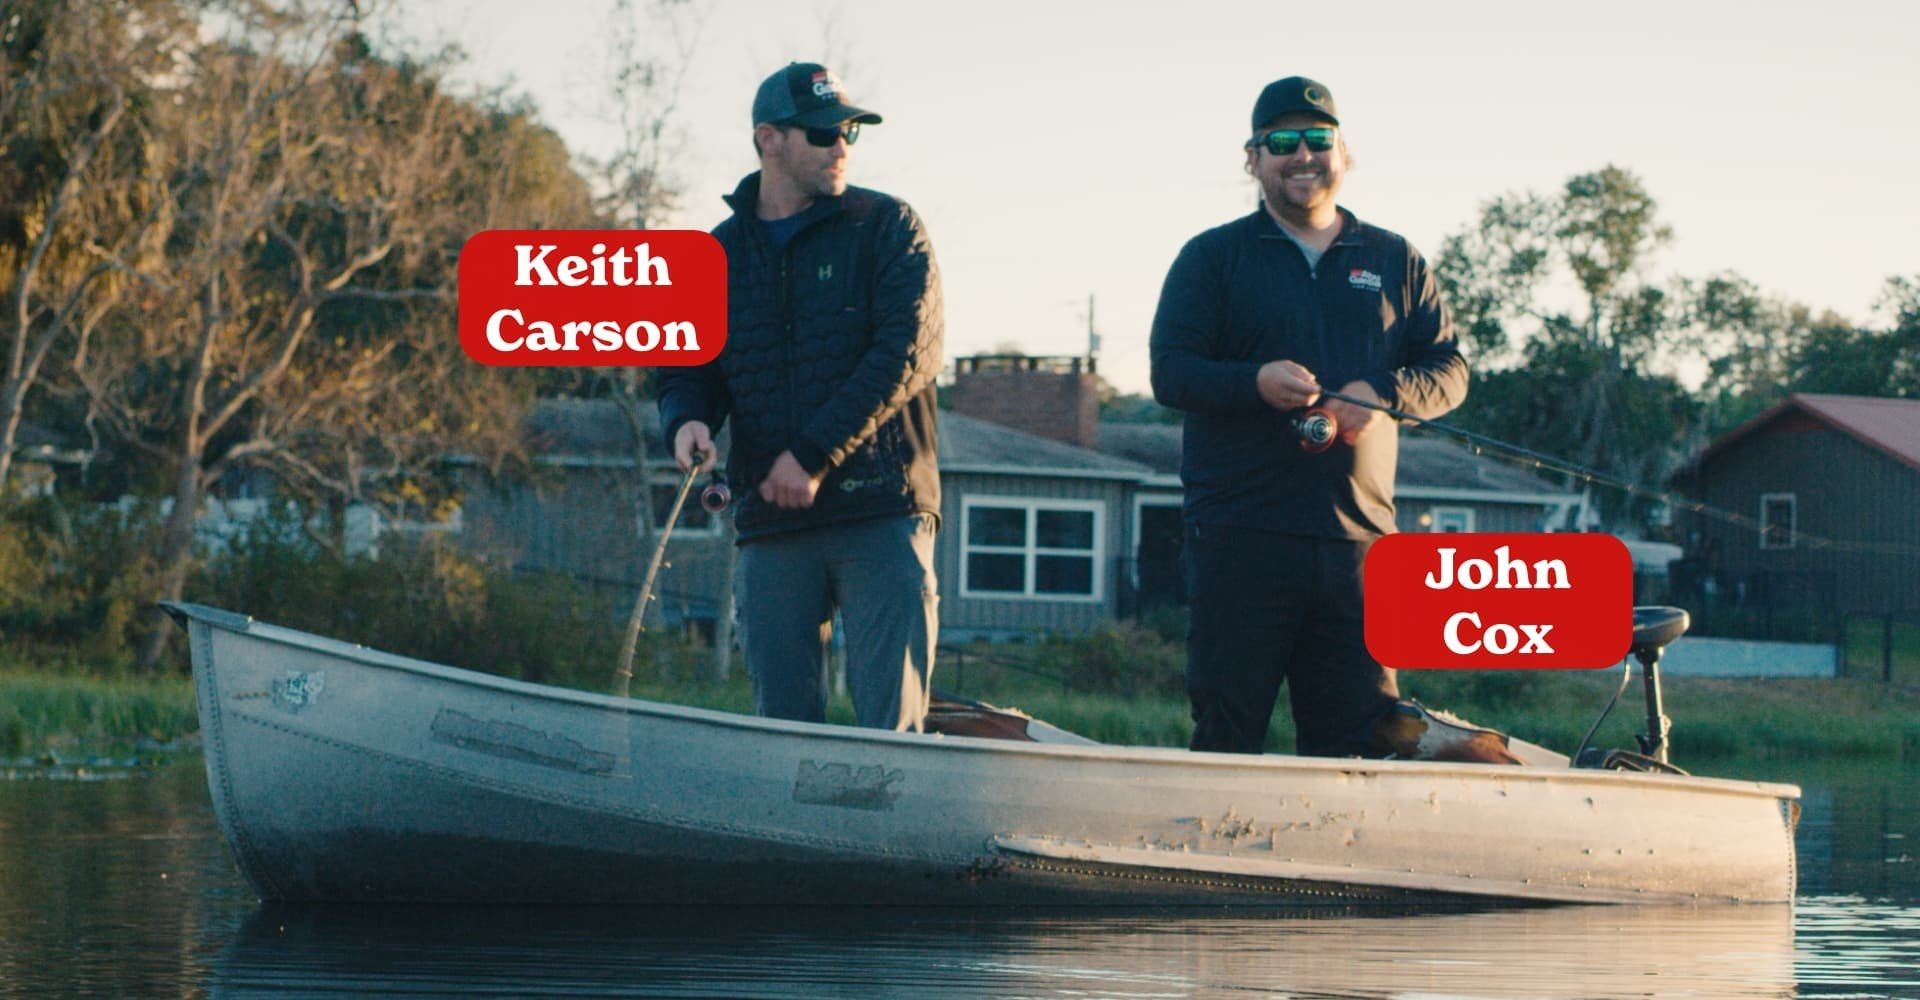 Cox and Carson standing on boat fishing